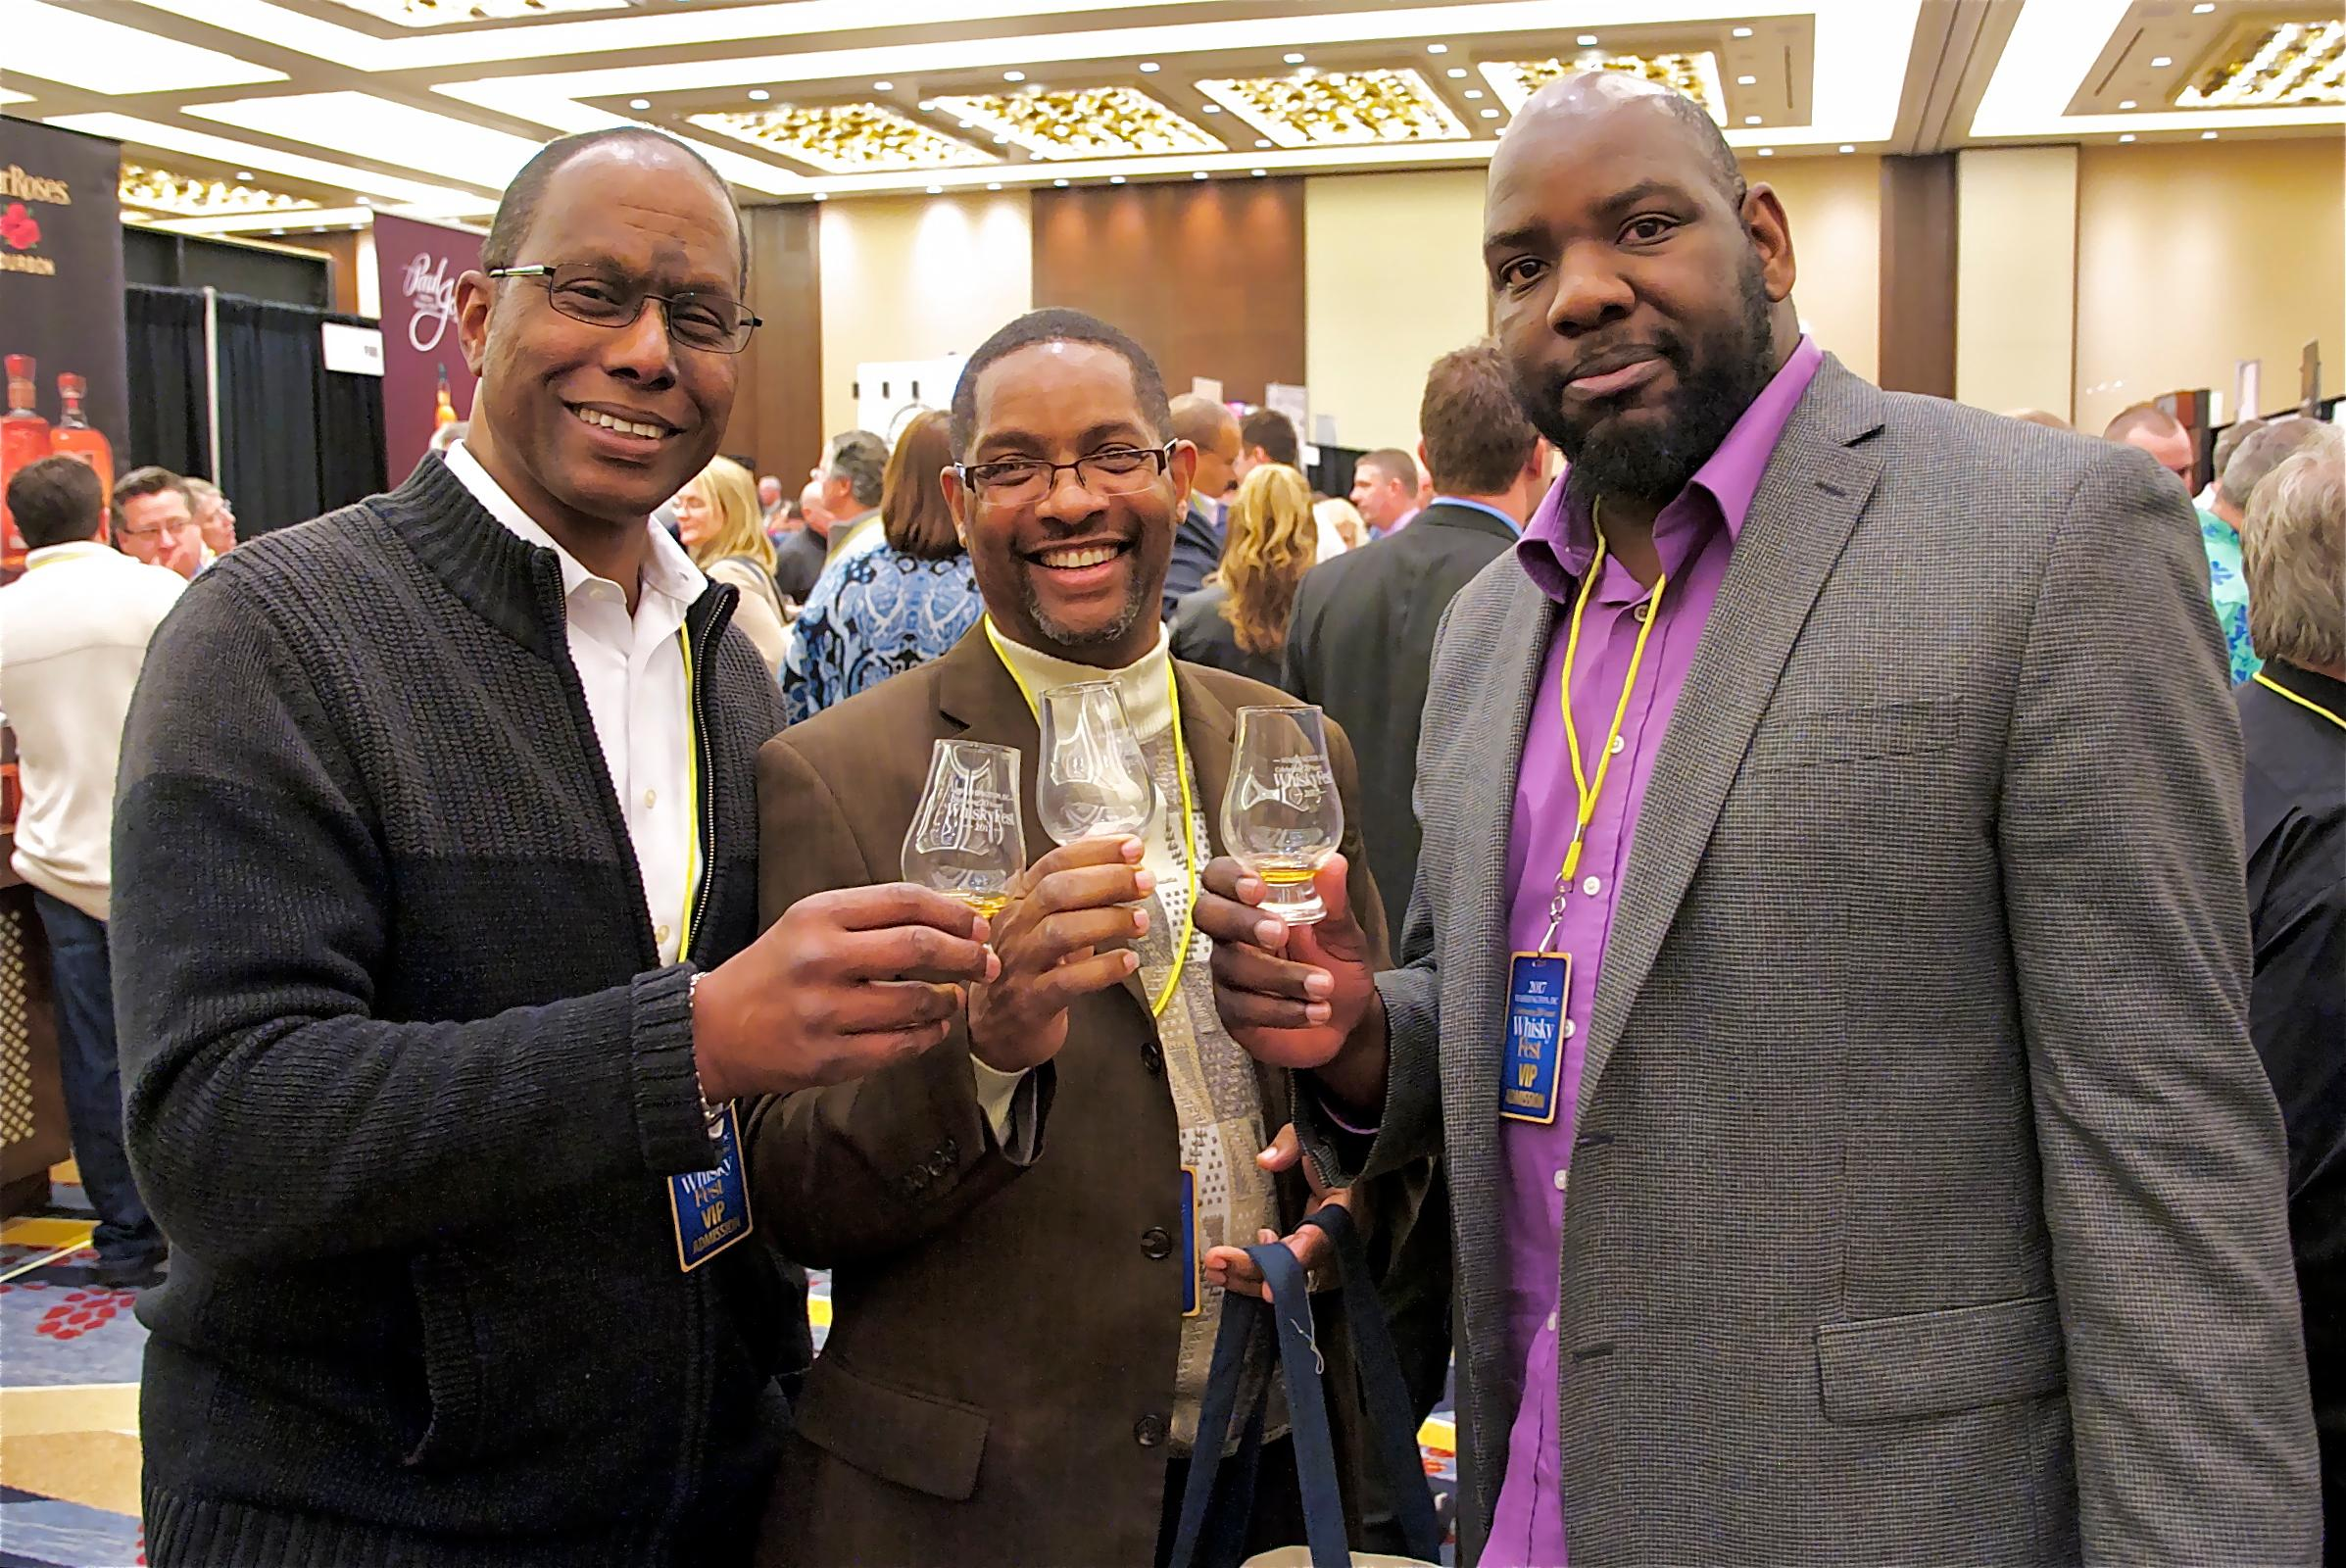 Tuesday, April 17, DC Marriott Marquis, VIP entrance time of 5:30 p.m., Grand Tasting from 6:30 p.m.-9:30 p.m., general admission $325, VIP admission $445. (Image: Courtesy WhiskeyFest)